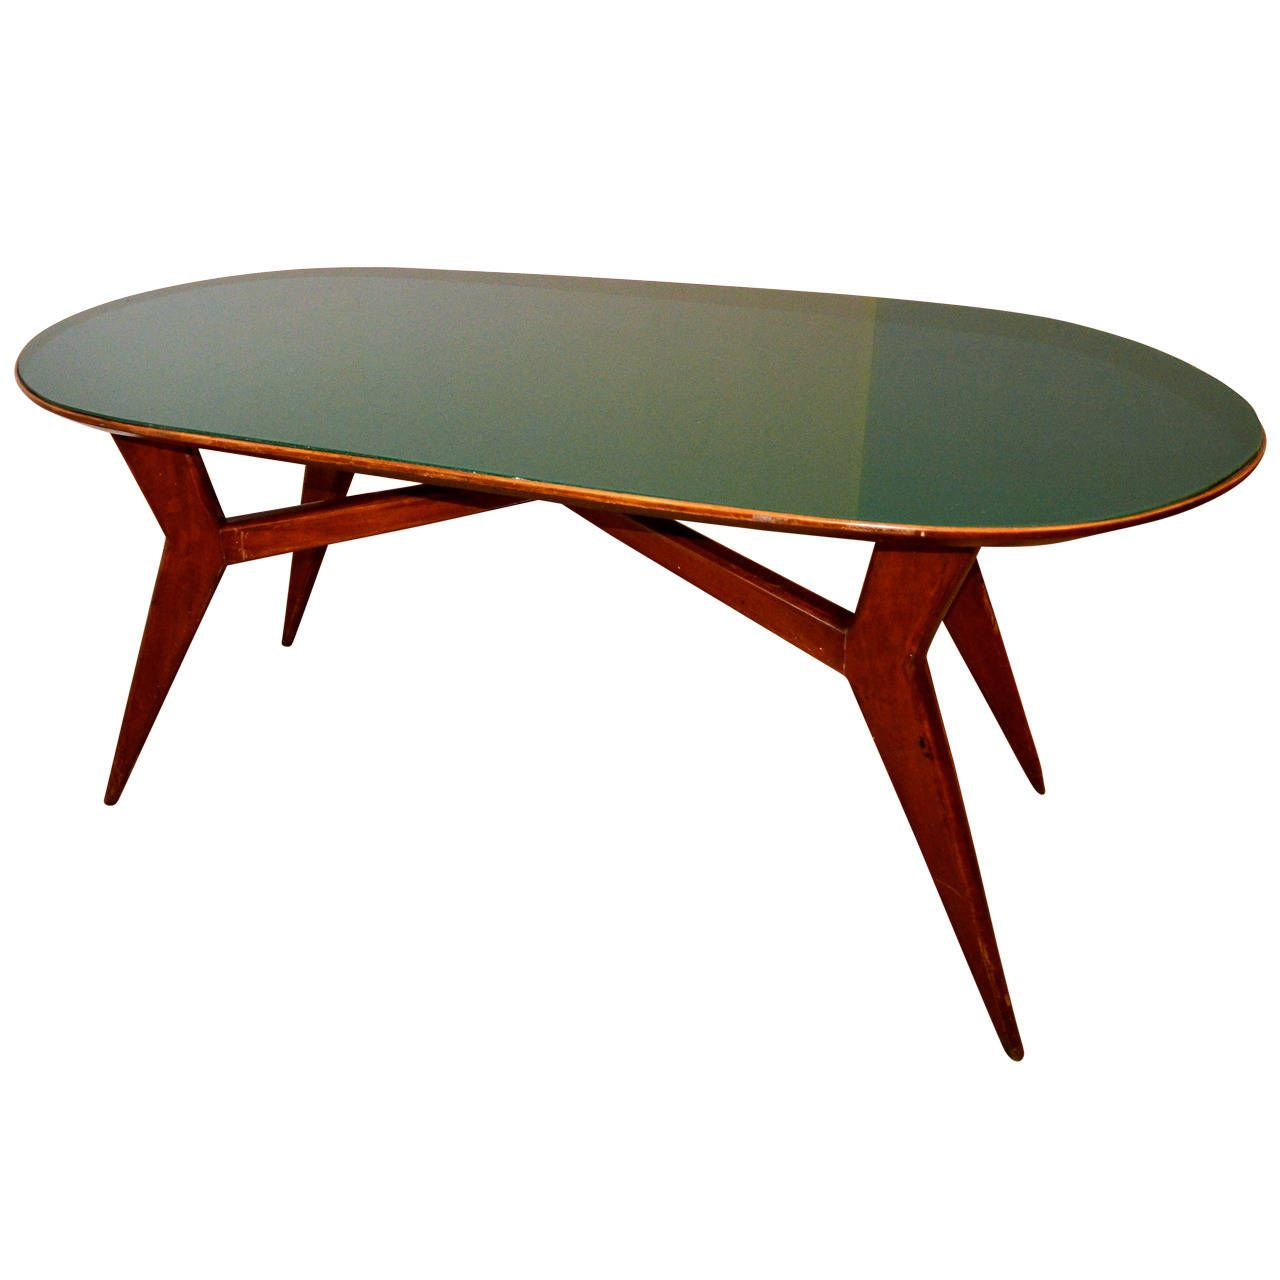 Midcentury Italian Table With Green Glassvittorio Dassi Enchanting Italian Glass Dining Room Tables Inspiration